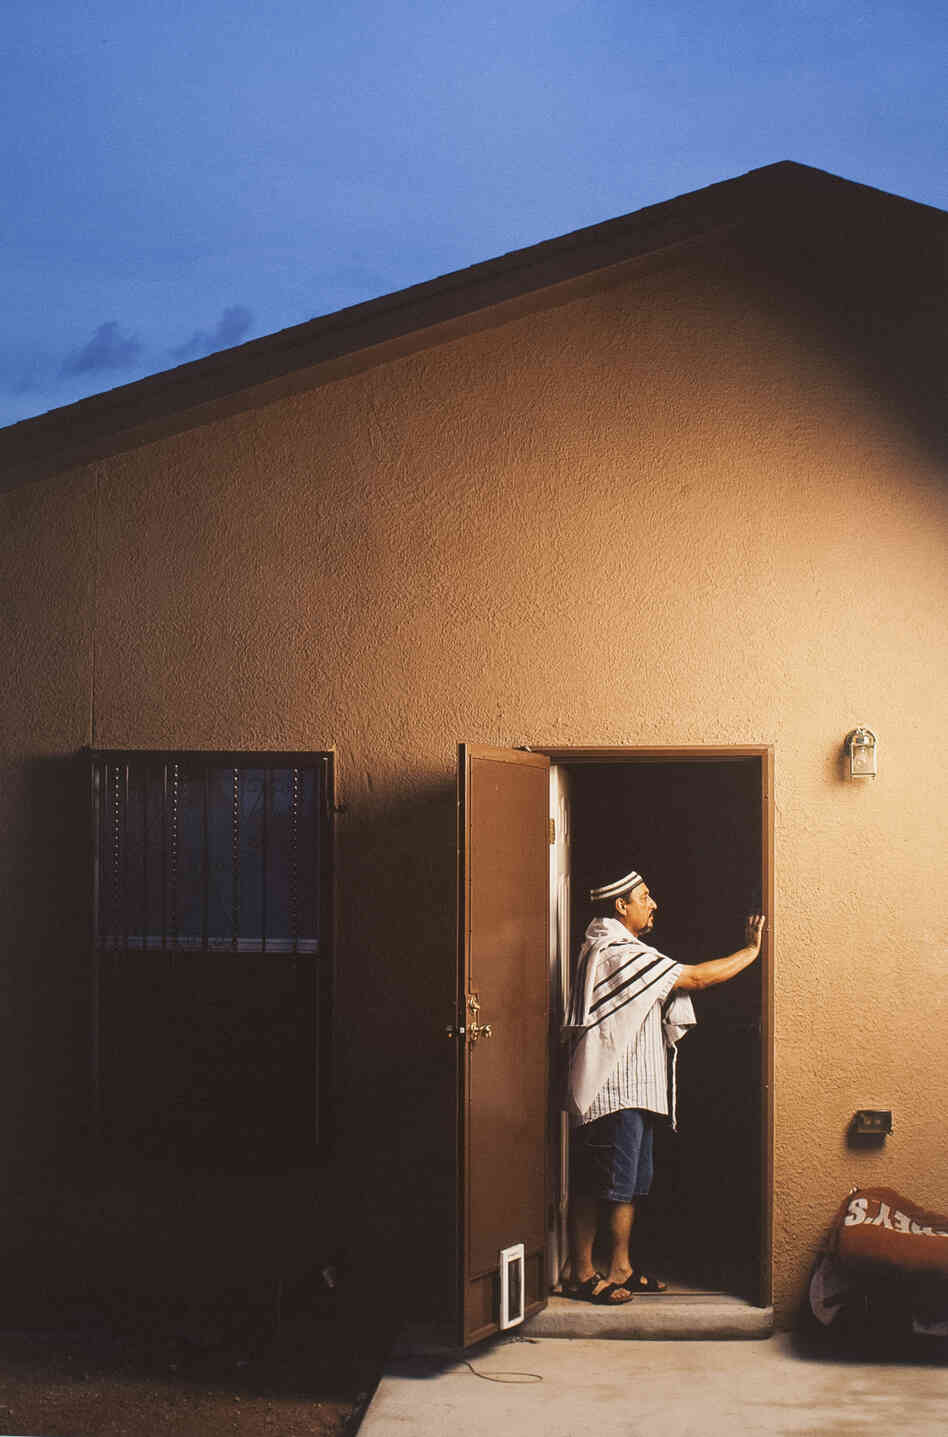 A man touches the mezuzah on his home in East El Paso, Texas.